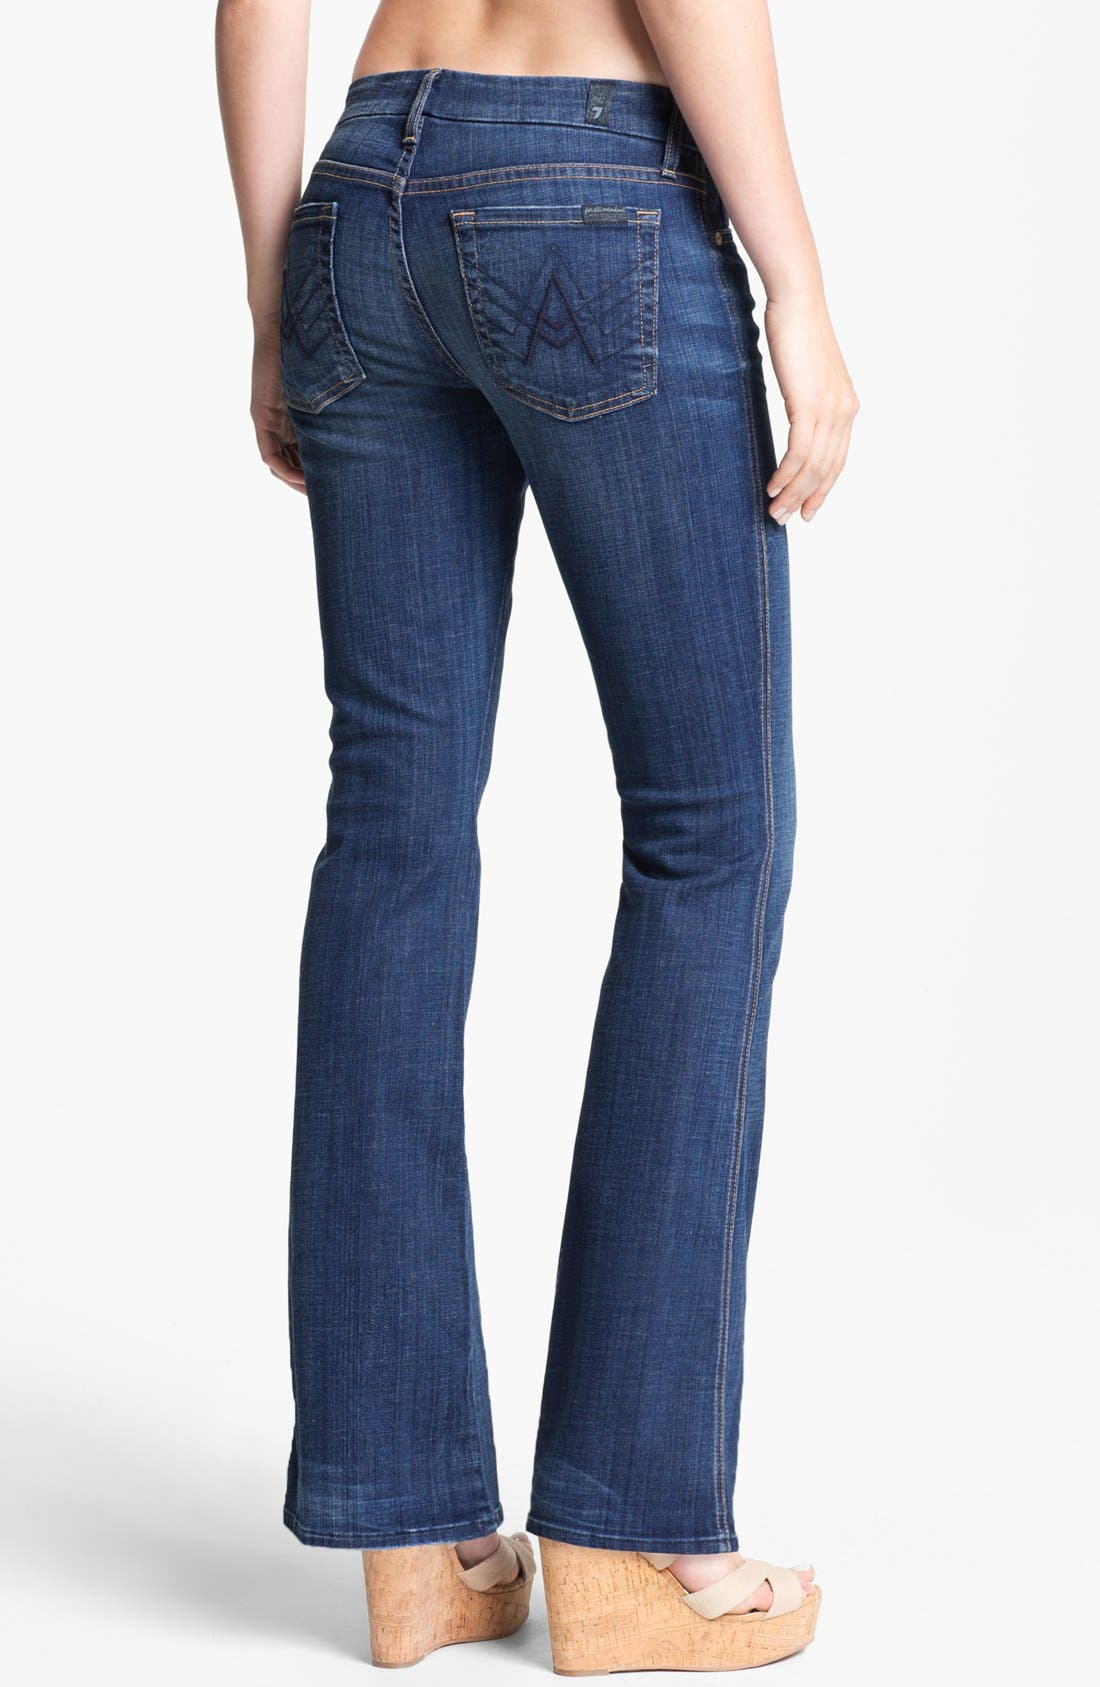 Alternate Image 2  - 7 For All Mankind® 'Lexie A' Jeans (Washed Medium Indigo) (Petite)